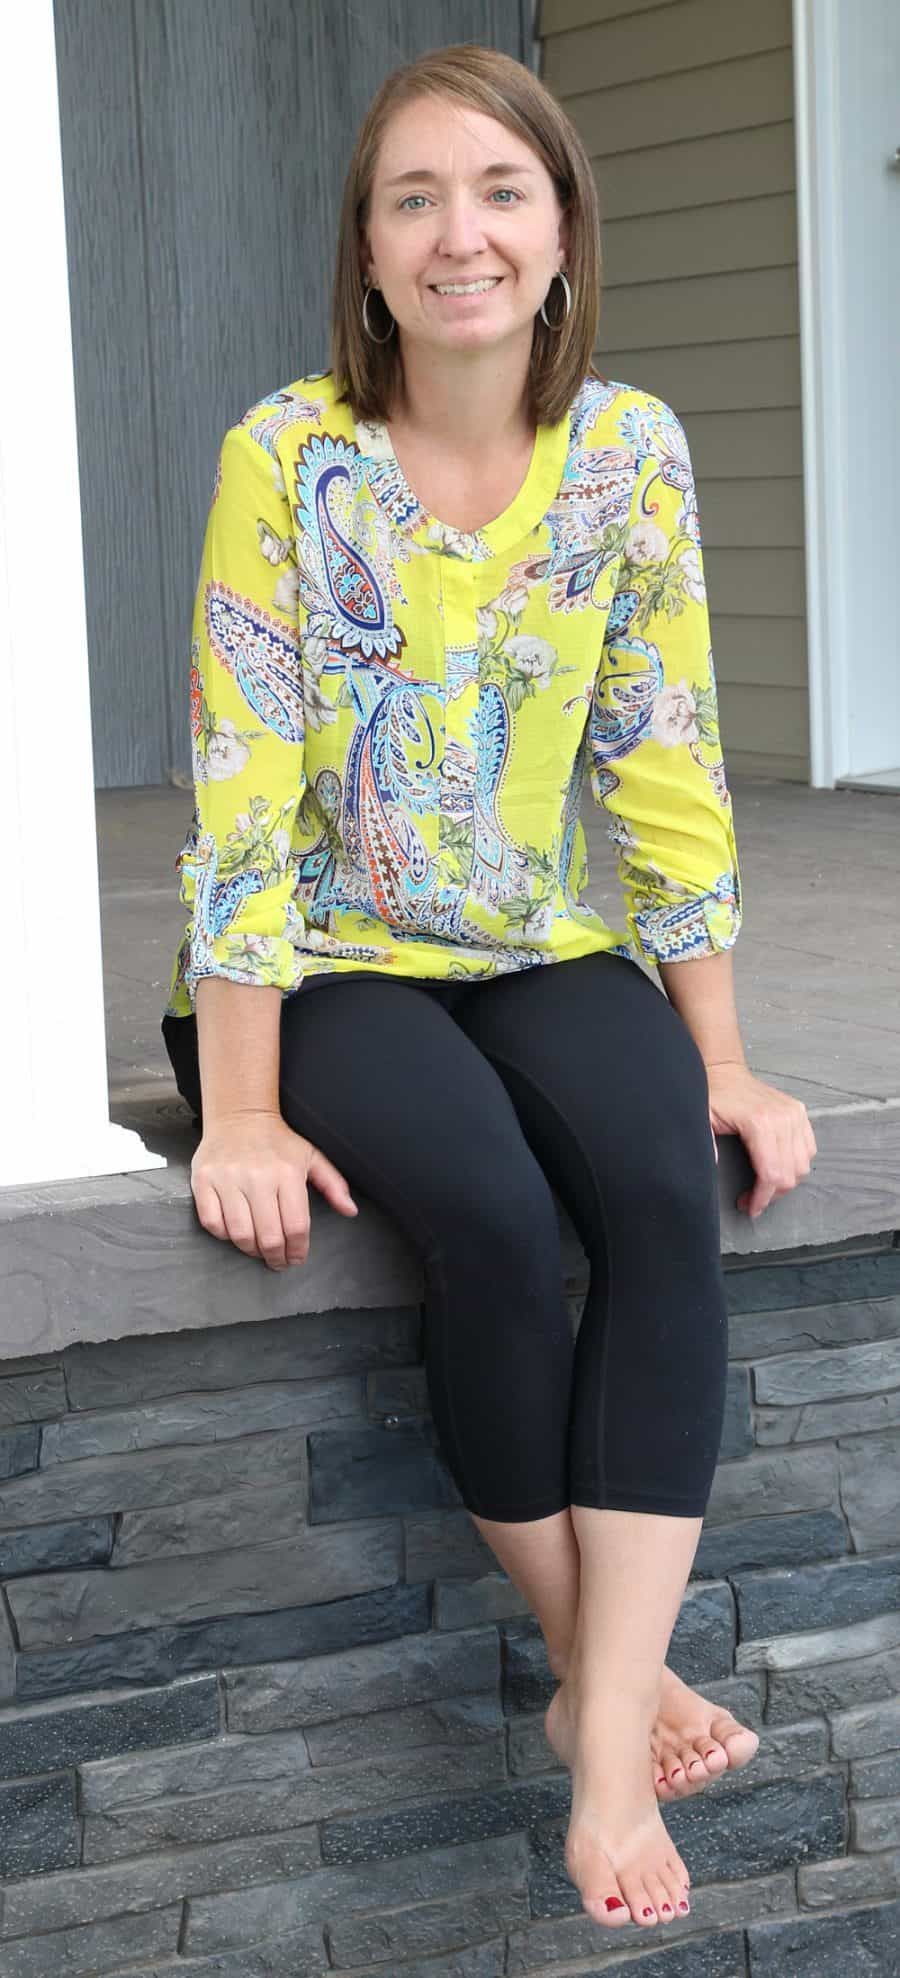 woman sitting on porch - Cheapest Clothing Subscription Option - A Nadine West Review